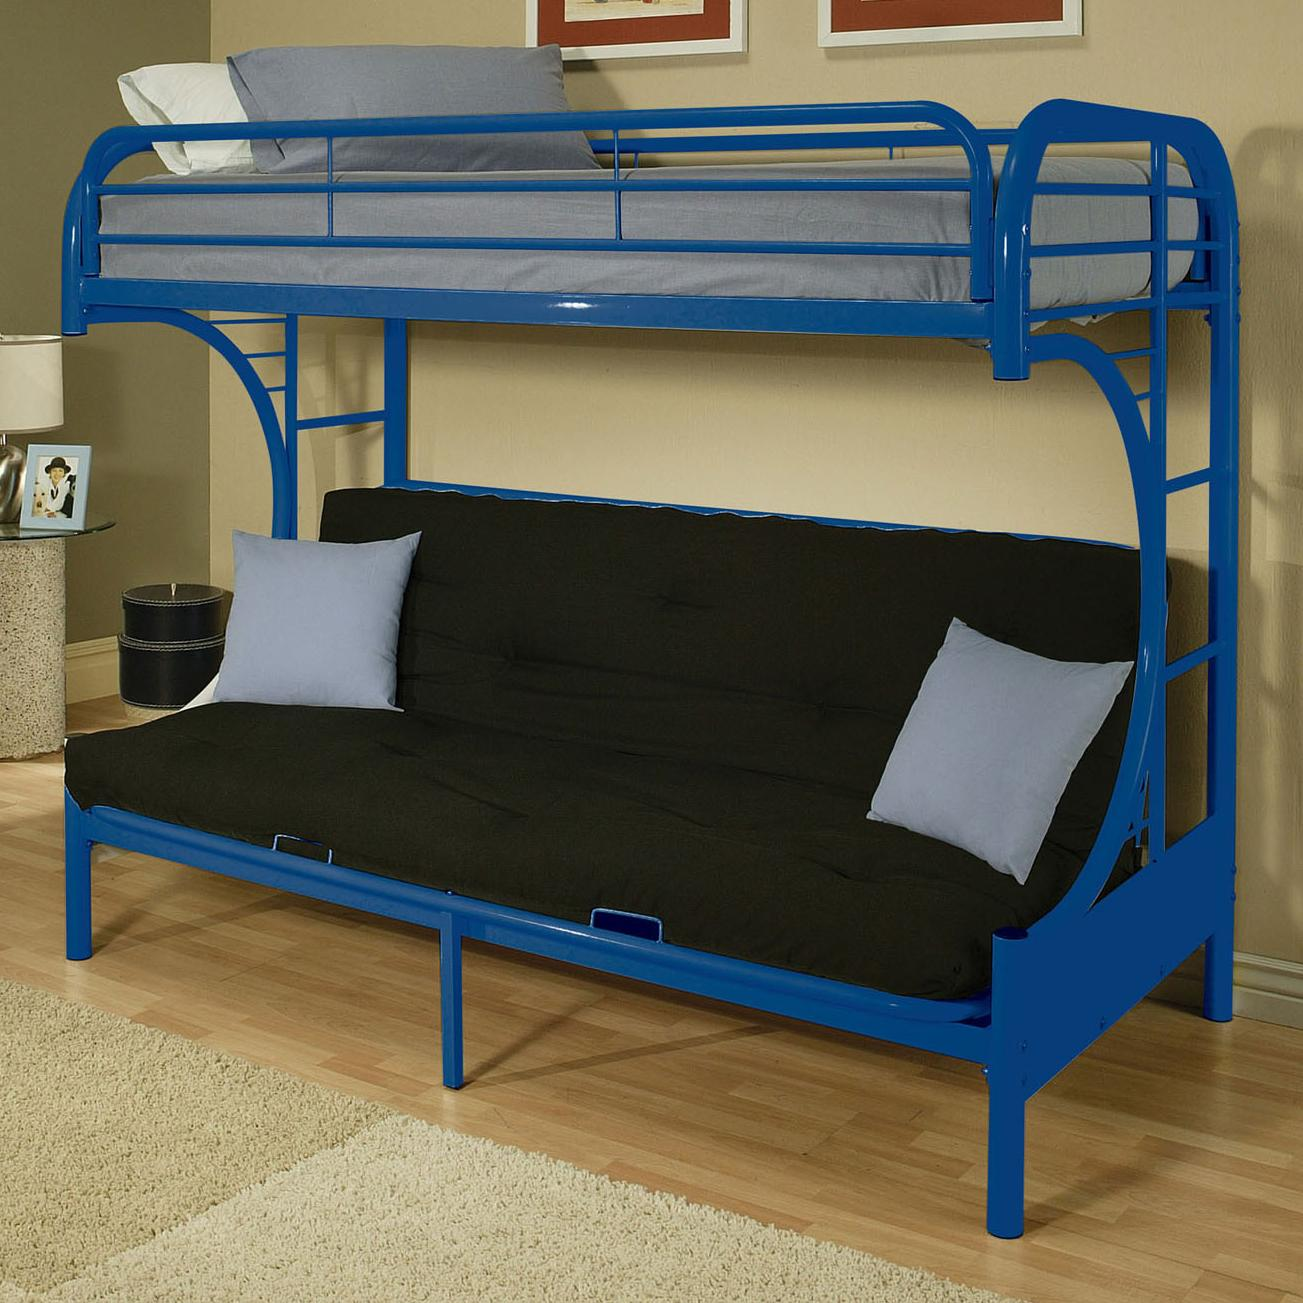 Acme Furniture Eclipse Twin/Full Bunk Bed - Item Number: 02091NV NAVY